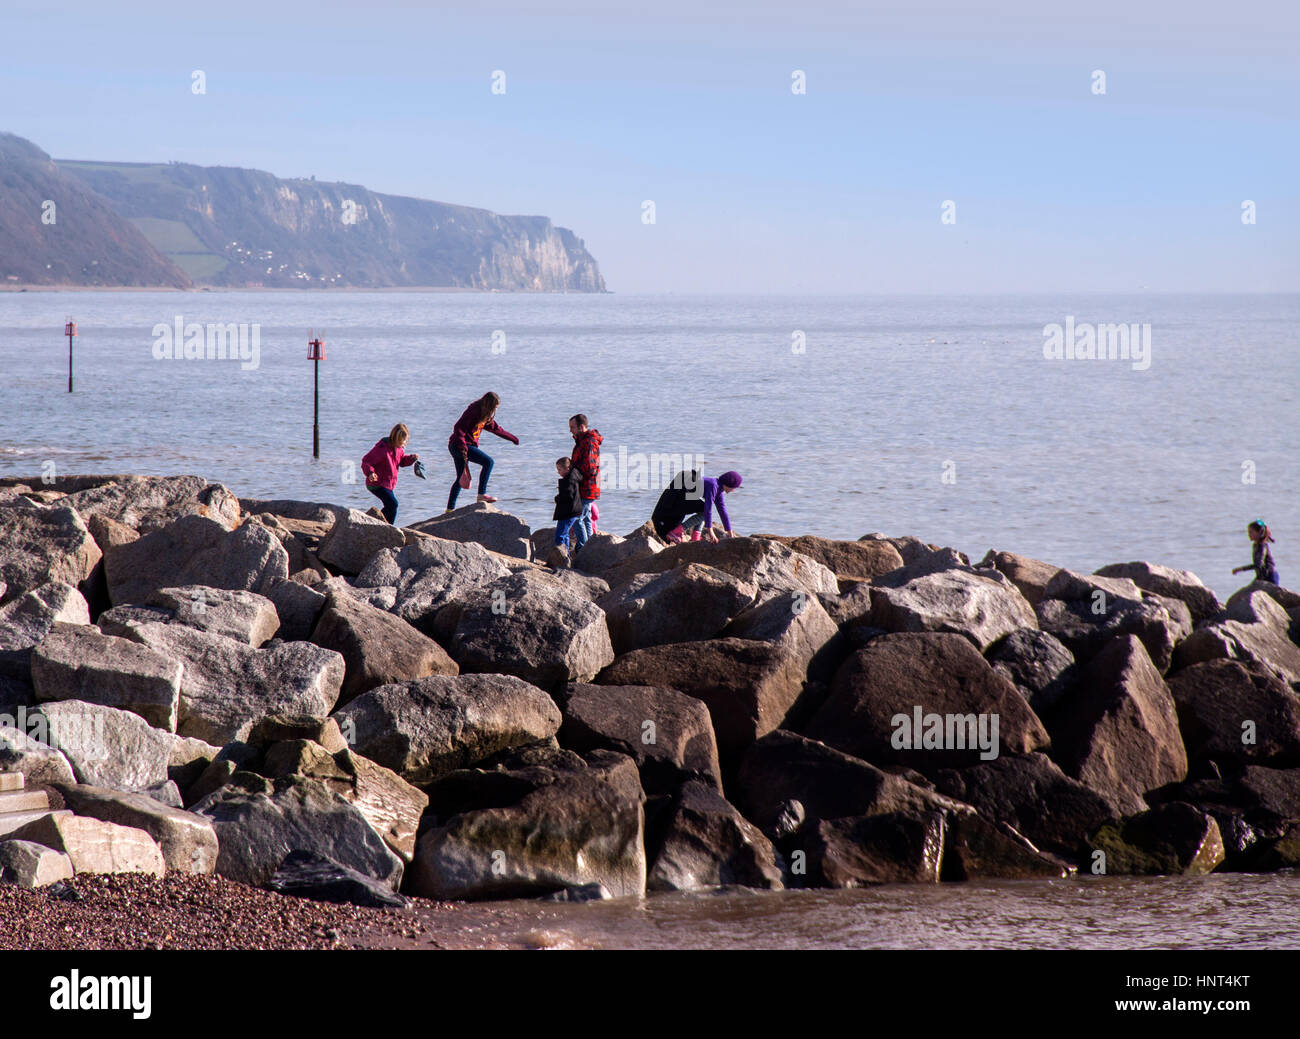 Sidmouth, Devon, UK. 16th Feb 2017. Half term playtime on the rock groynes at Sidmouth, Devon. Photo: South West - Stock Image